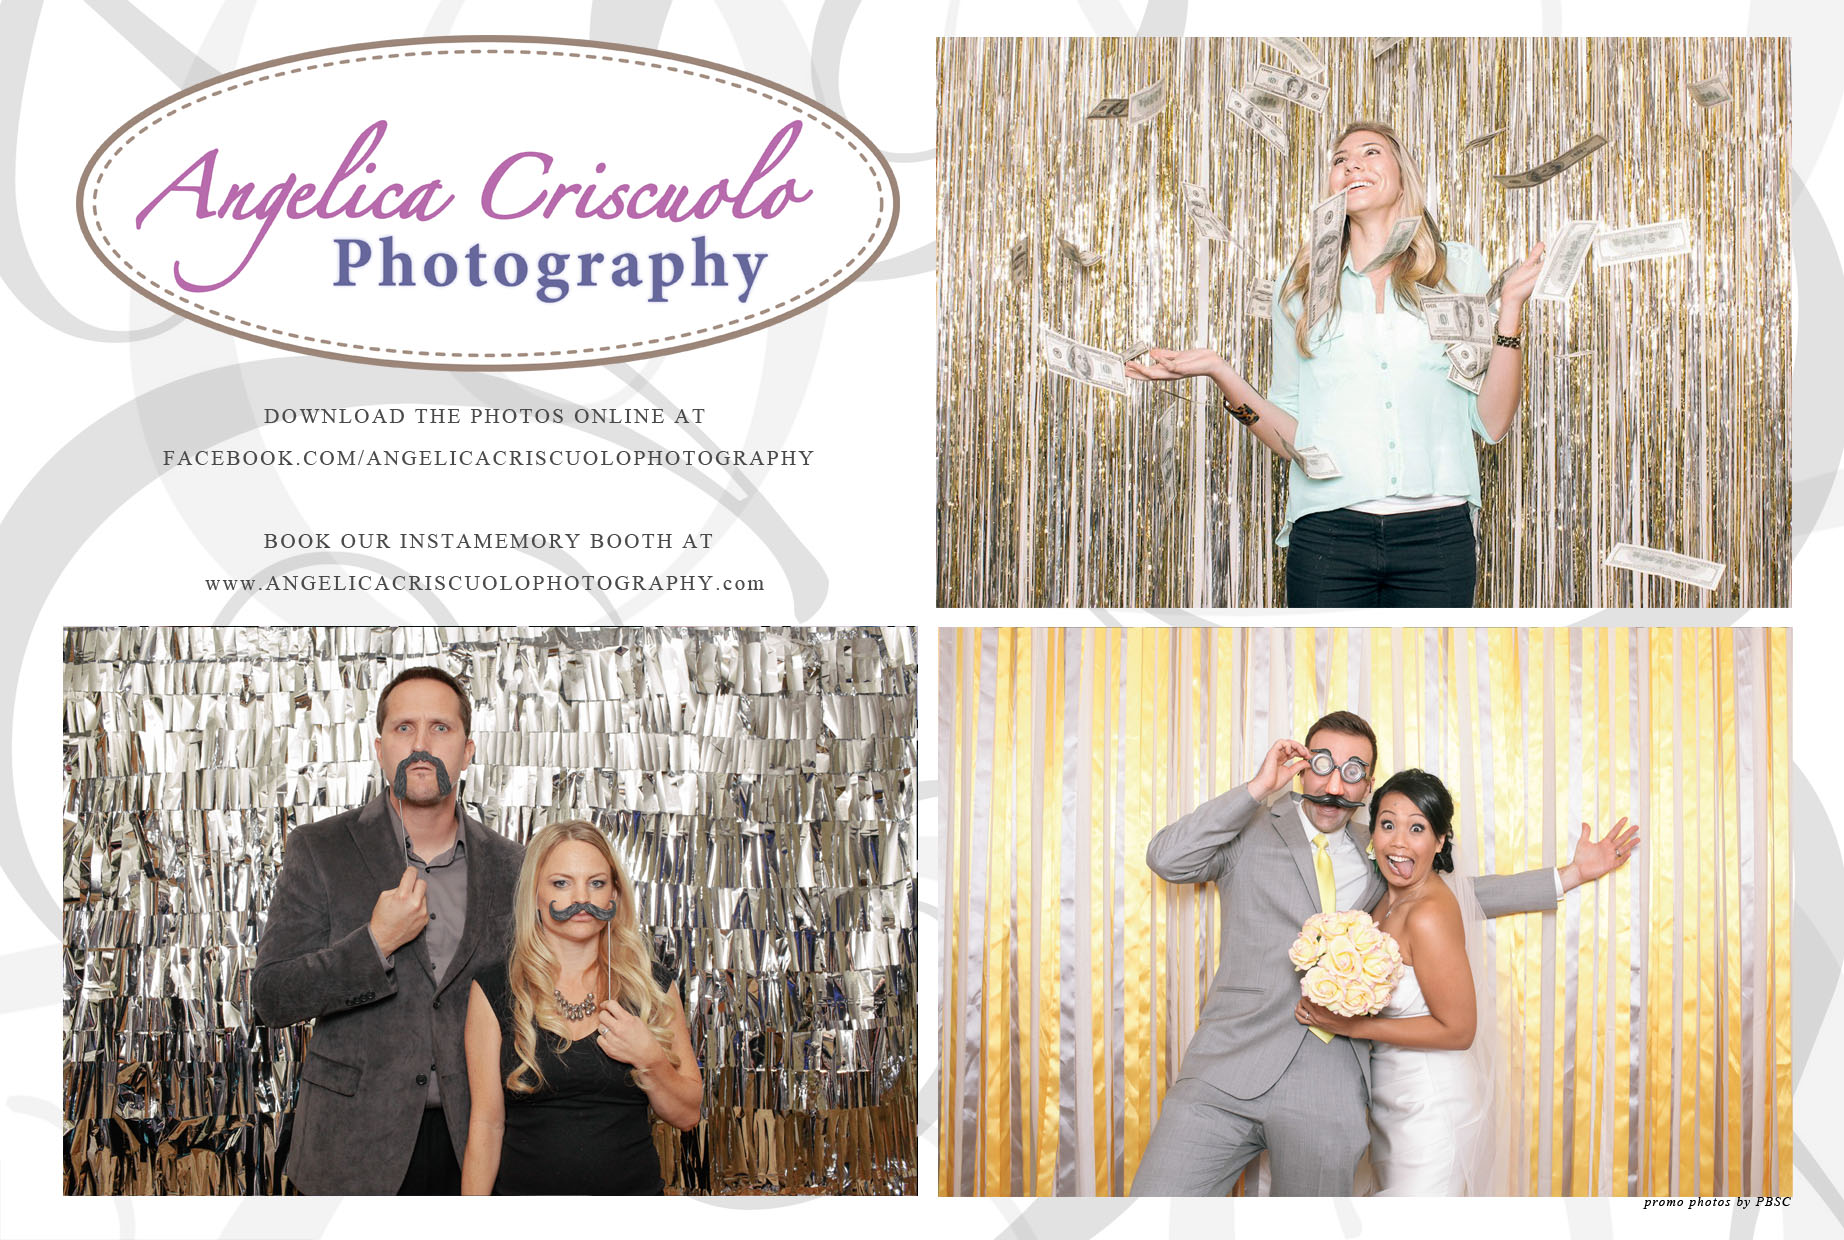 Best NYC Photo Booth New Jersey, Connecticut Weddings Corporate Events